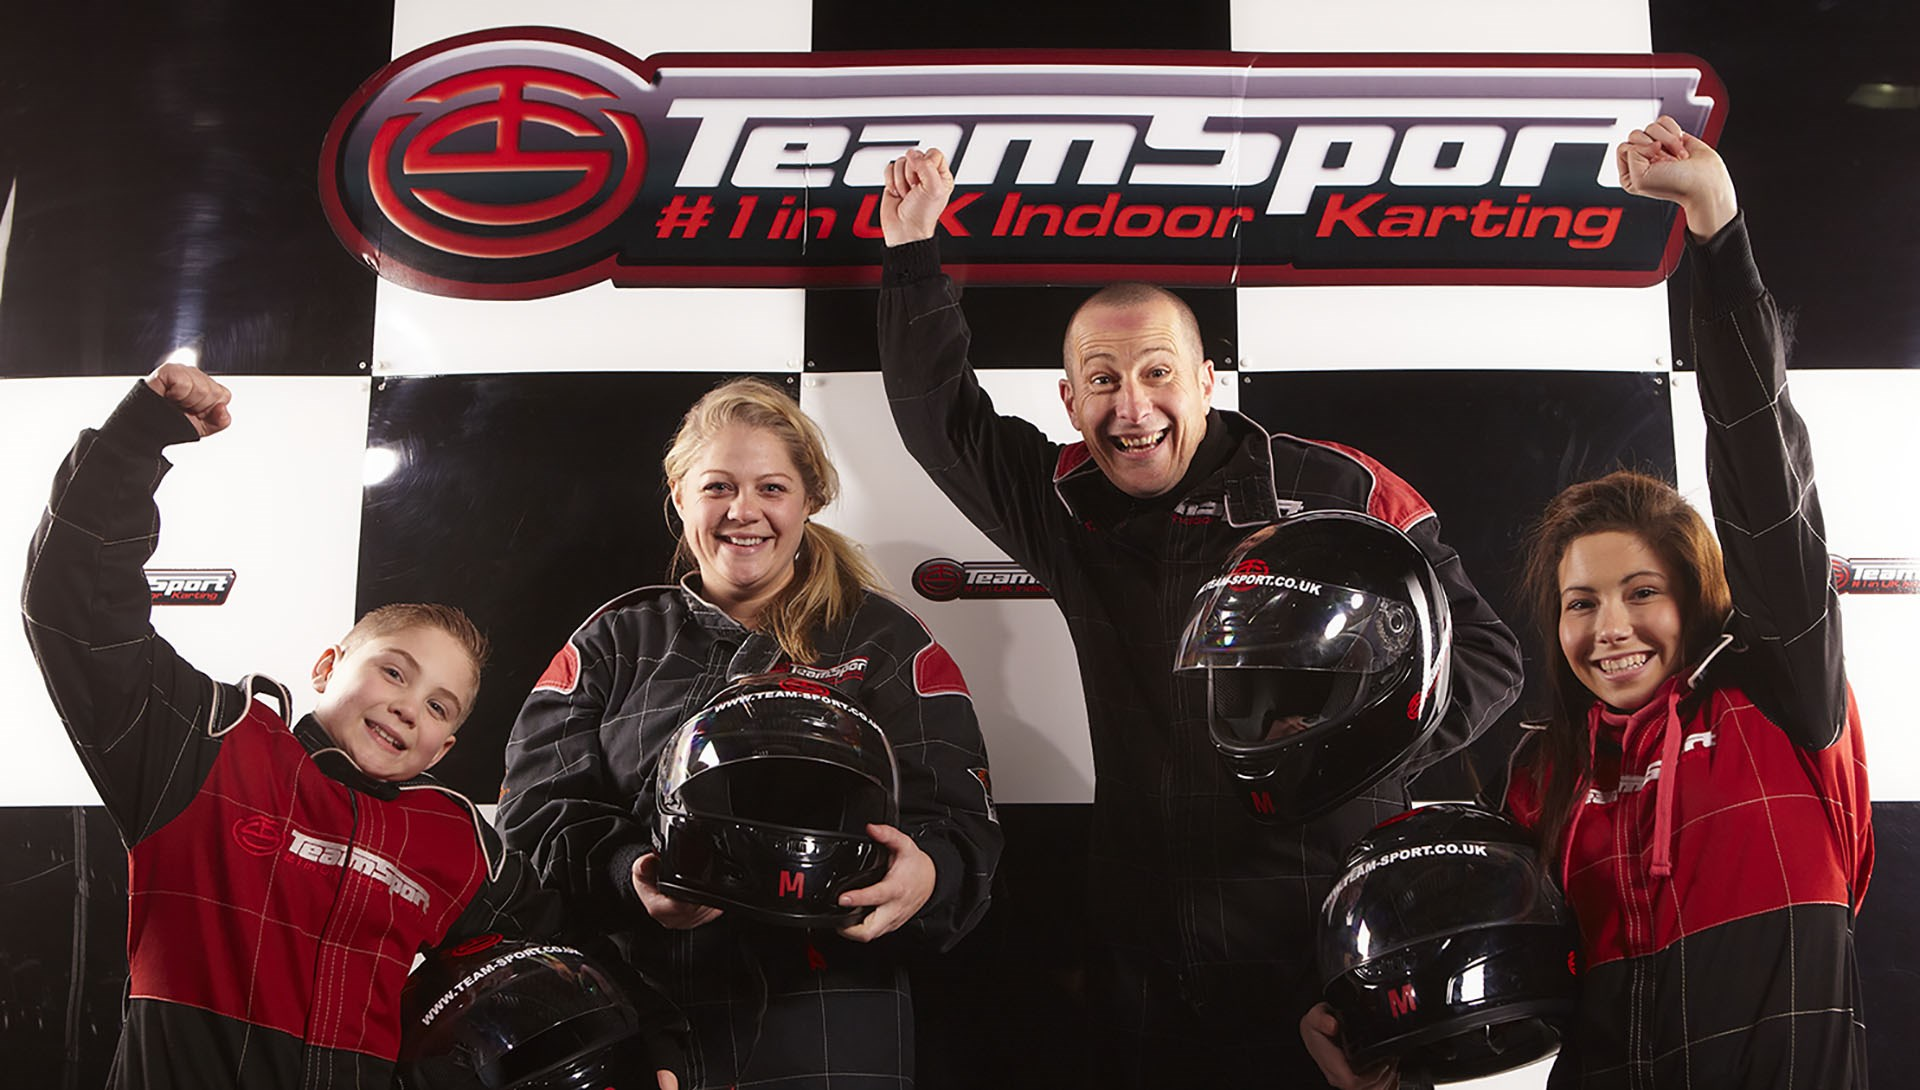 TeamSport_Gallery_Go_Karting_New_Track_1920x1090-min_3.jpg